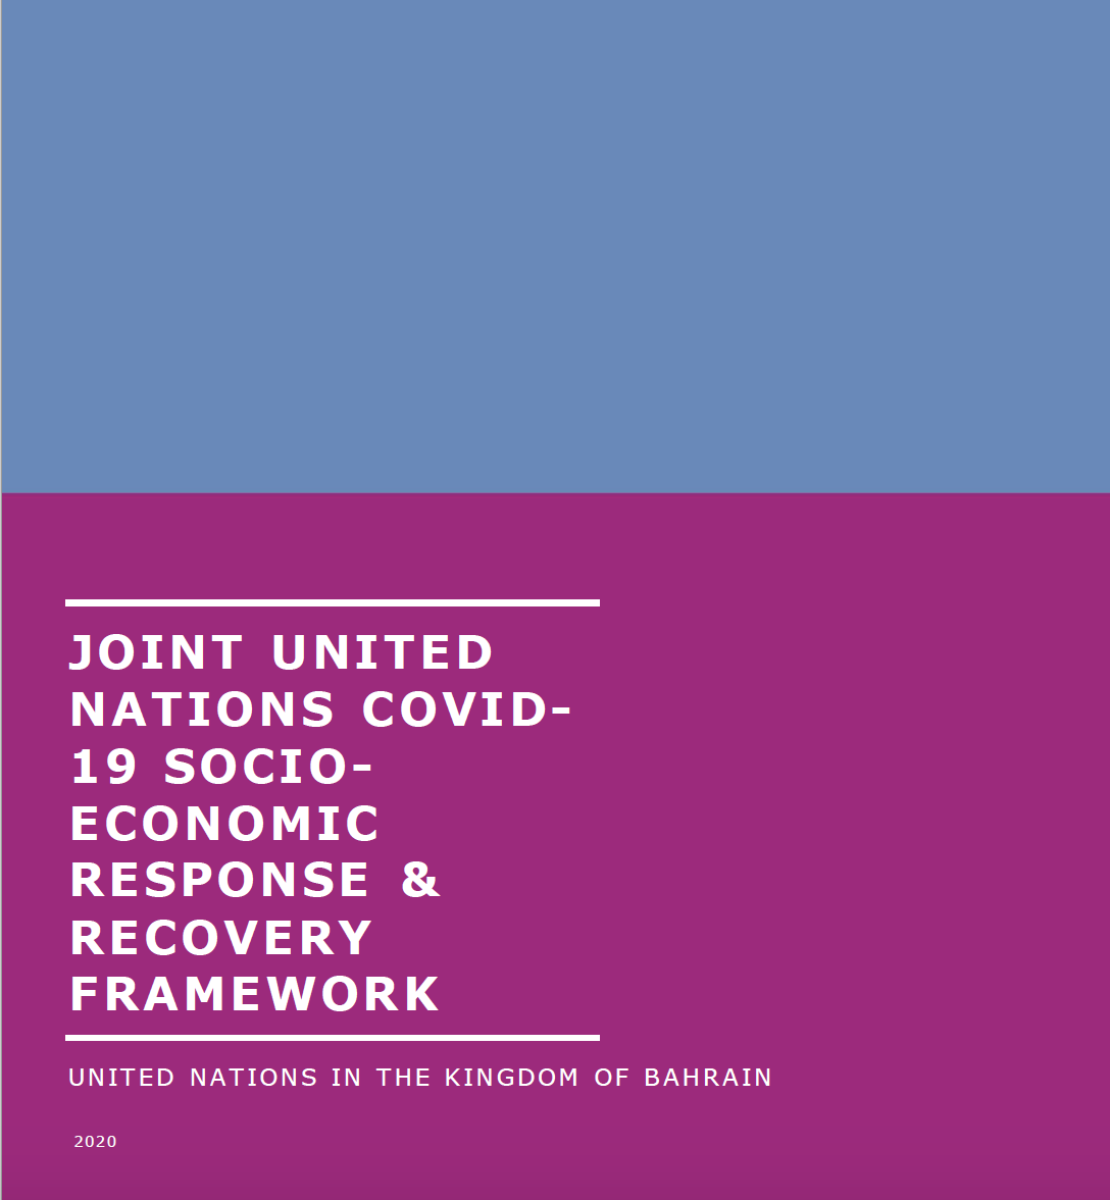 """Cover shows the title """"Joint United Nations COVID-19 Socio-Economic Response & Recovery Framework in the Kingdom of Bahrain"""" over blue and purple background."""